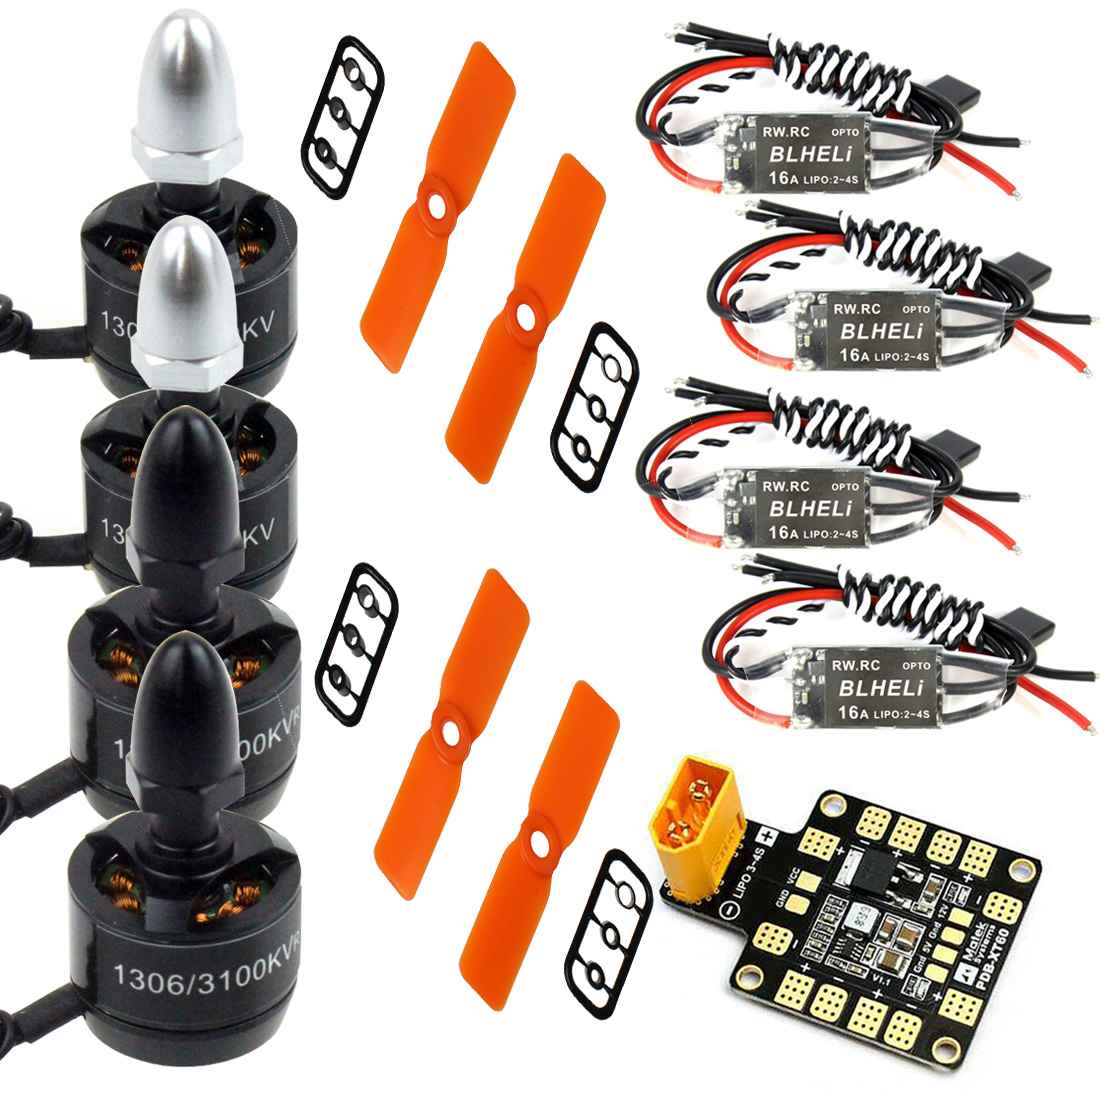 цена Combo Kit for Mini 130 150 180 210 Drone 1306 3100KV Brushless Motor Mini BLHeli OPTO 16A ESC + 3030 ABS Propellers CW CCW в интернет-магазинах